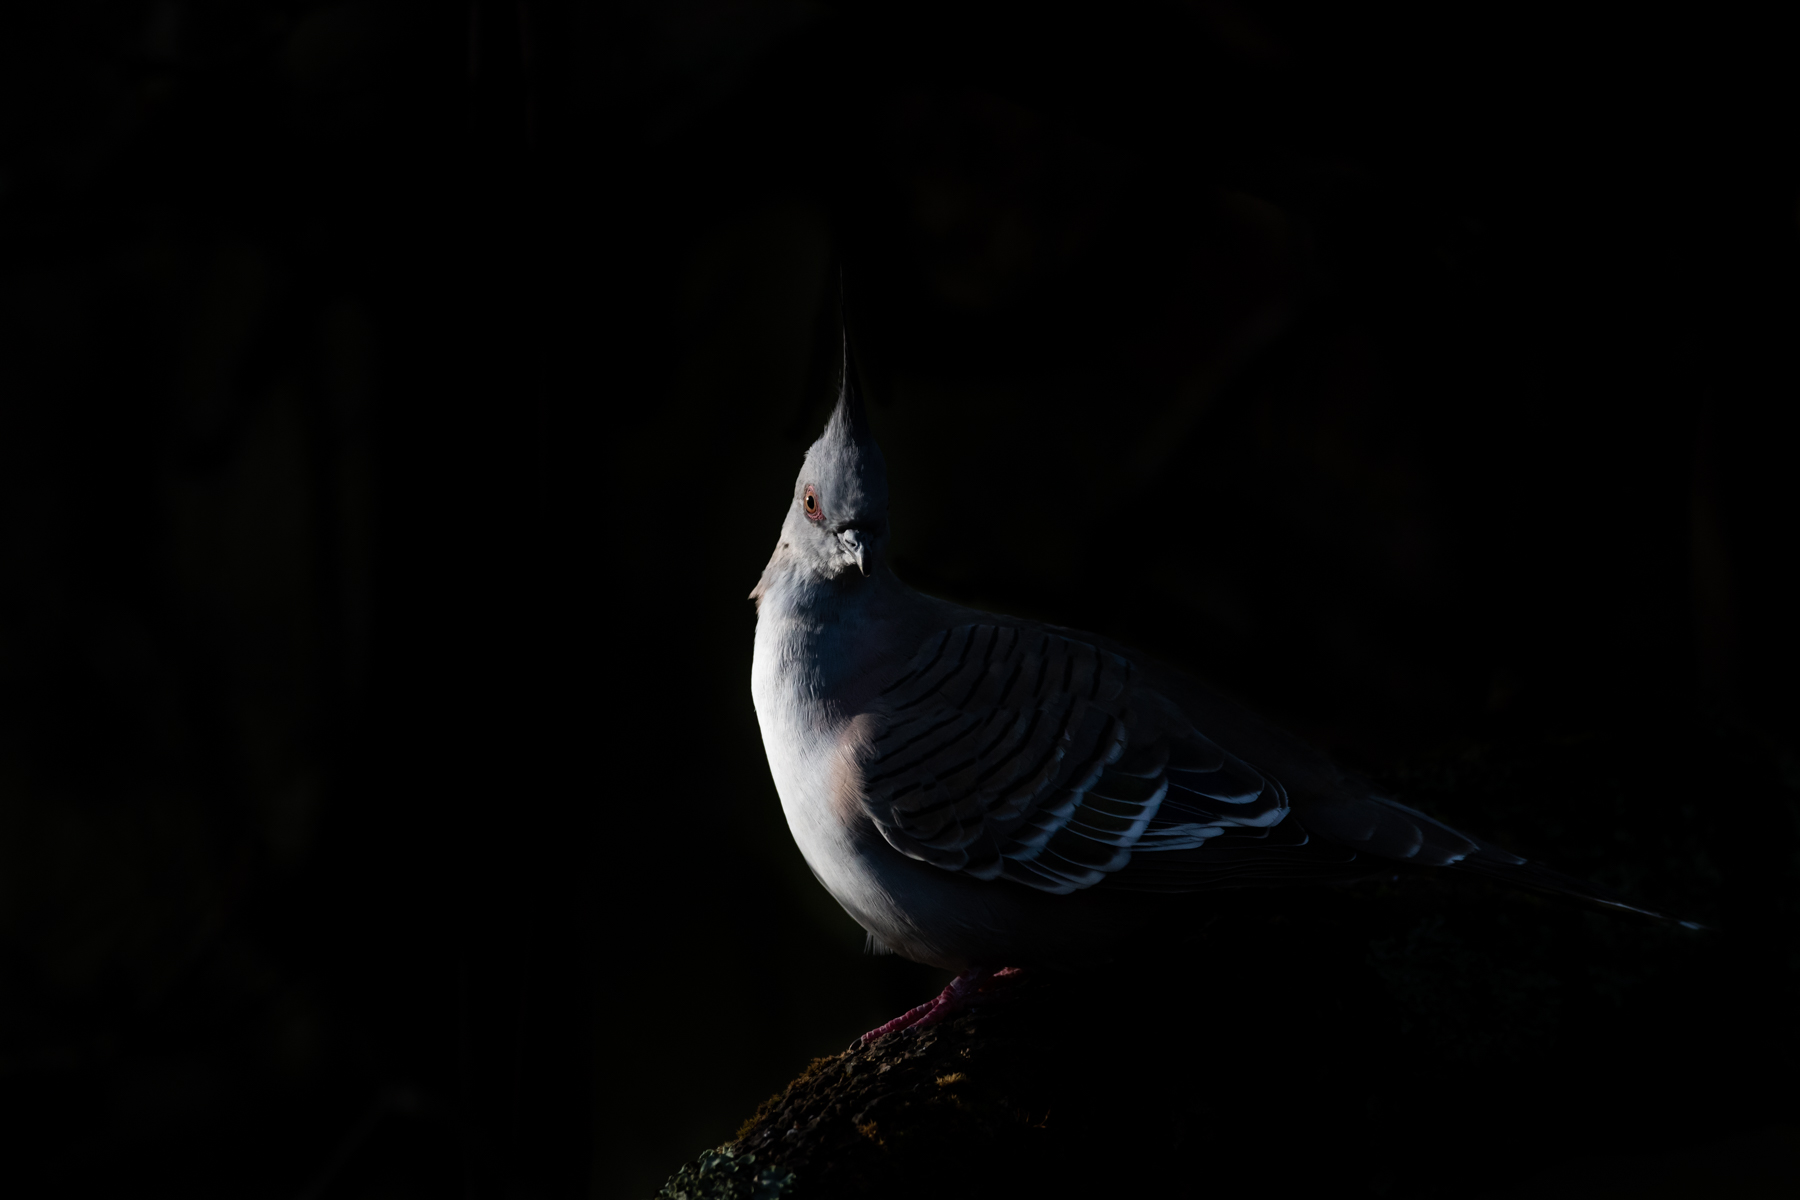 Crested Pigeon by Campbell Mole